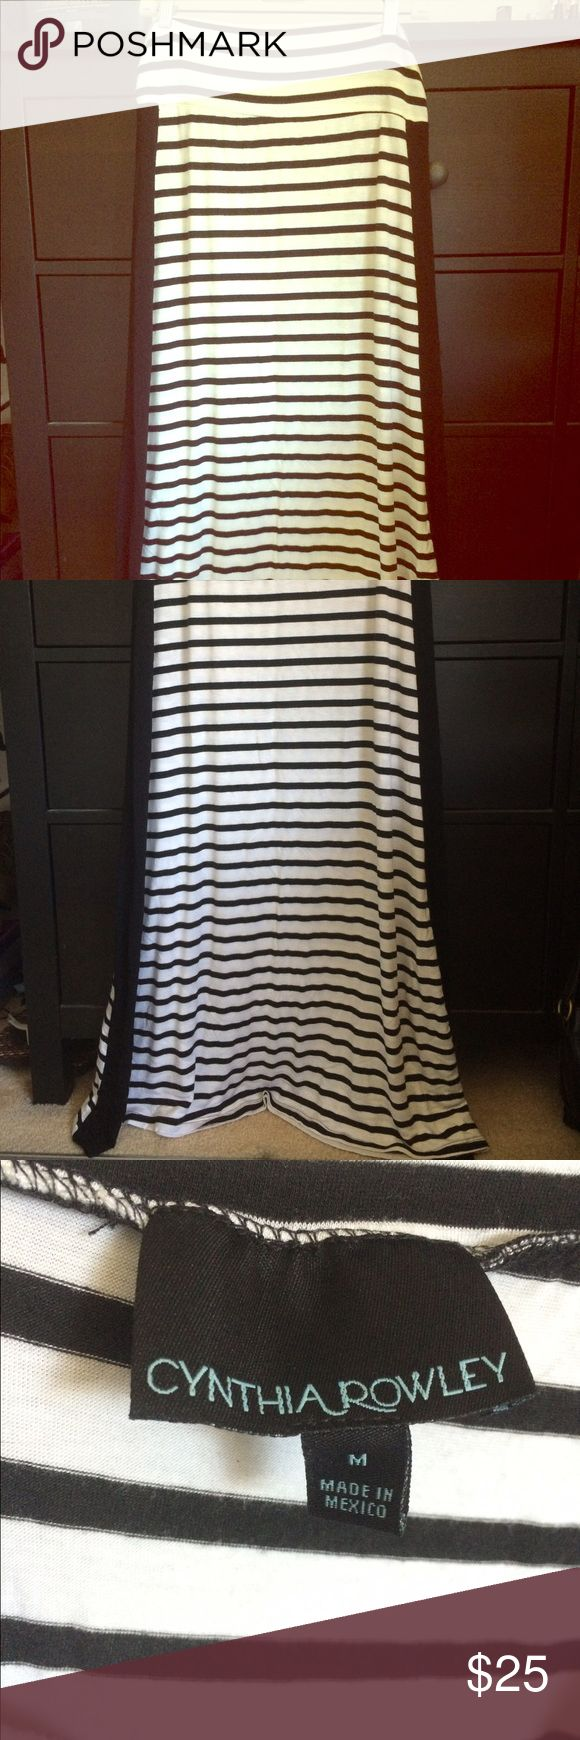 Striped Maxi Skirt Selling this black and white striped maxi skirt! New condition! Perfect to wear this summer when walking around or going to the pool! Cynthia Rowley Skirts Maxi